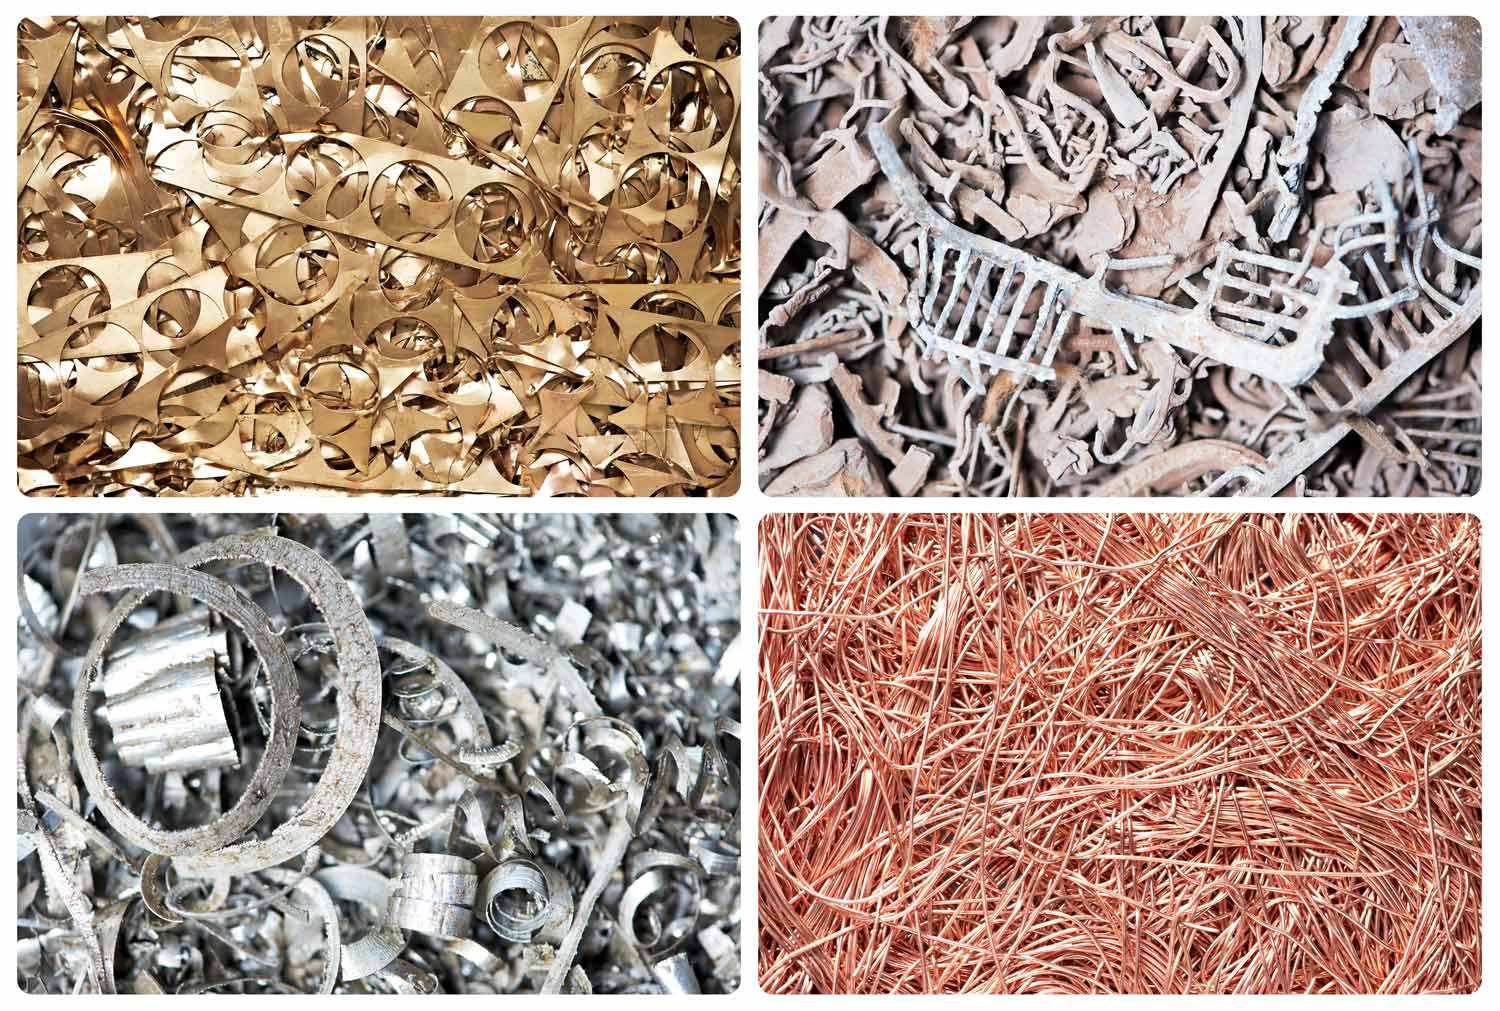 types of metals: golden, steel, copper and aluminium